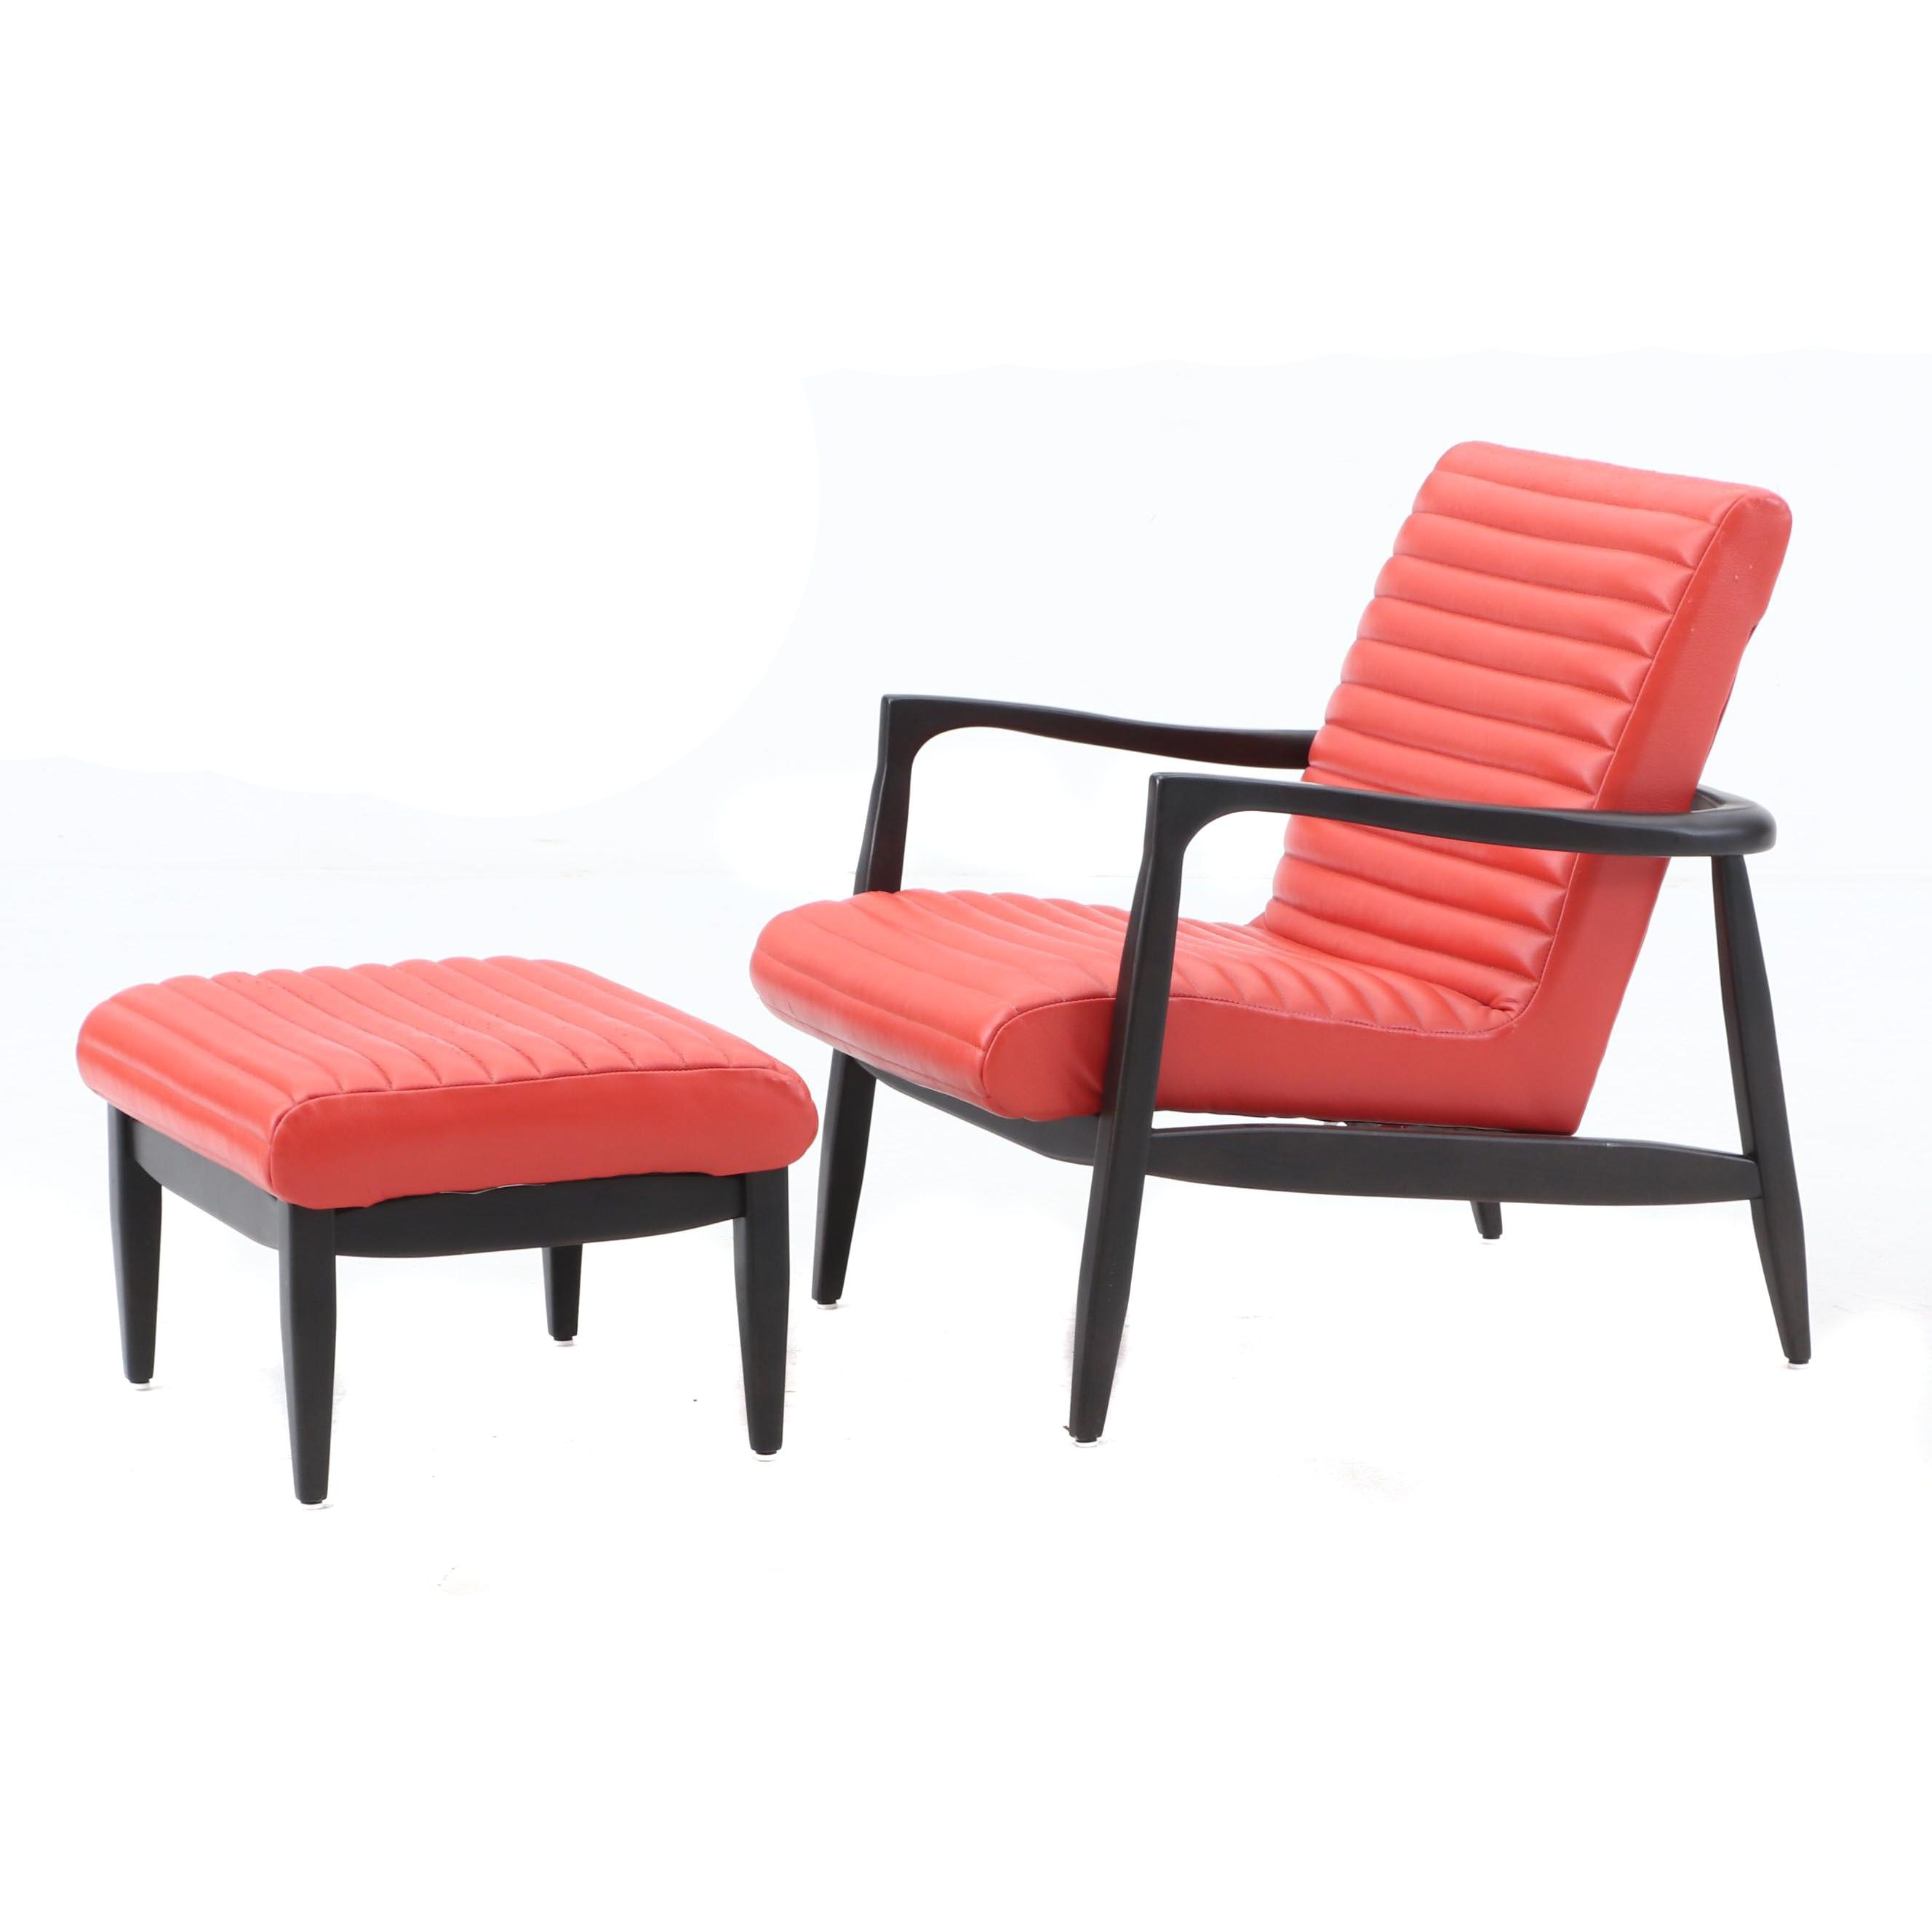 "Modernist ""Charco"" Armchair and Ottoman by Precedent Furniture"